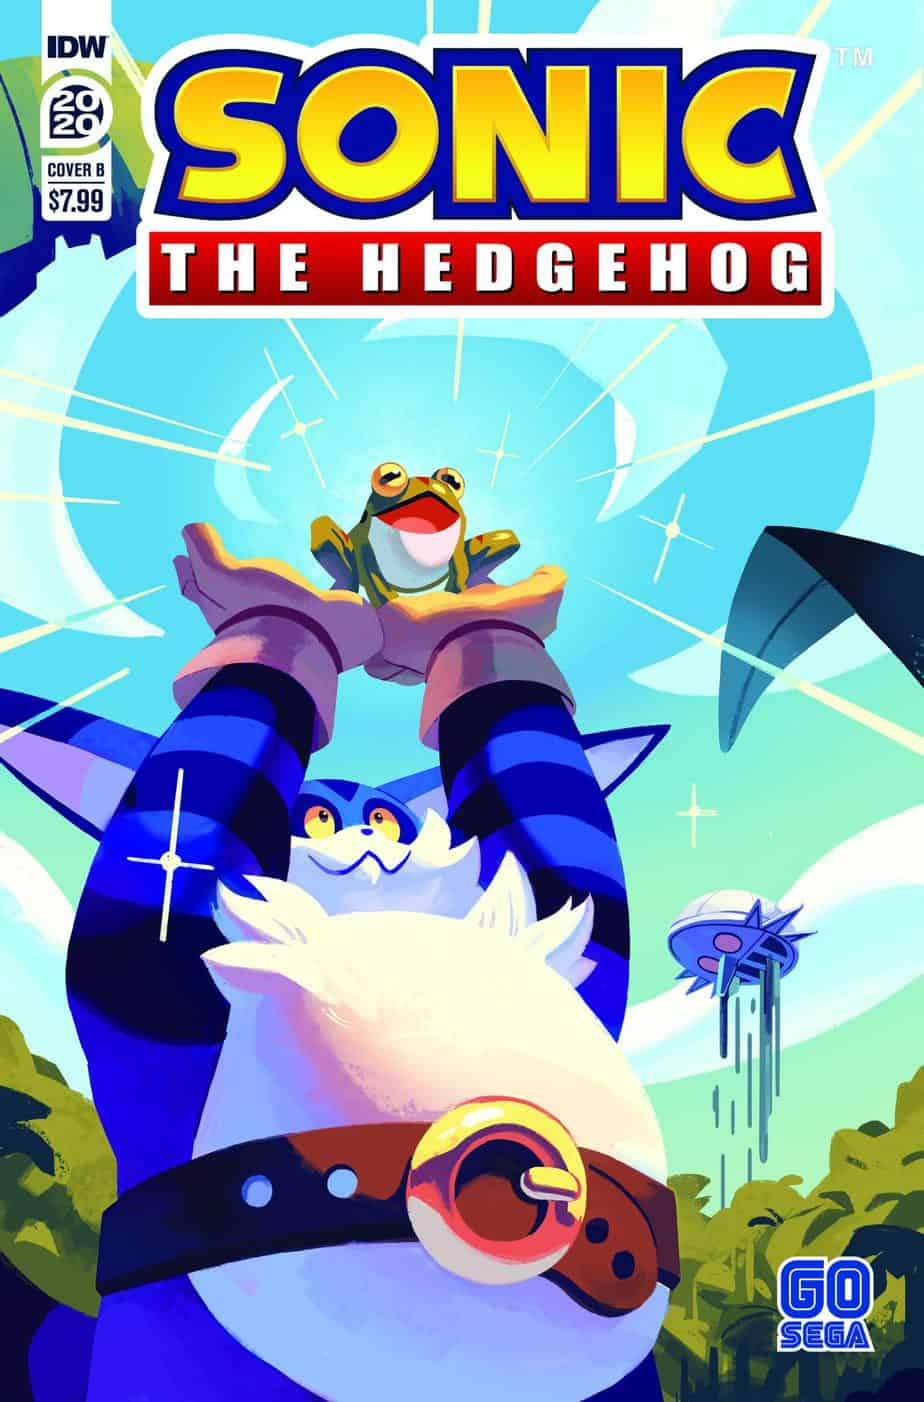 SONIC THE HEDGEHOG ANNUAL 2020 - Cover B